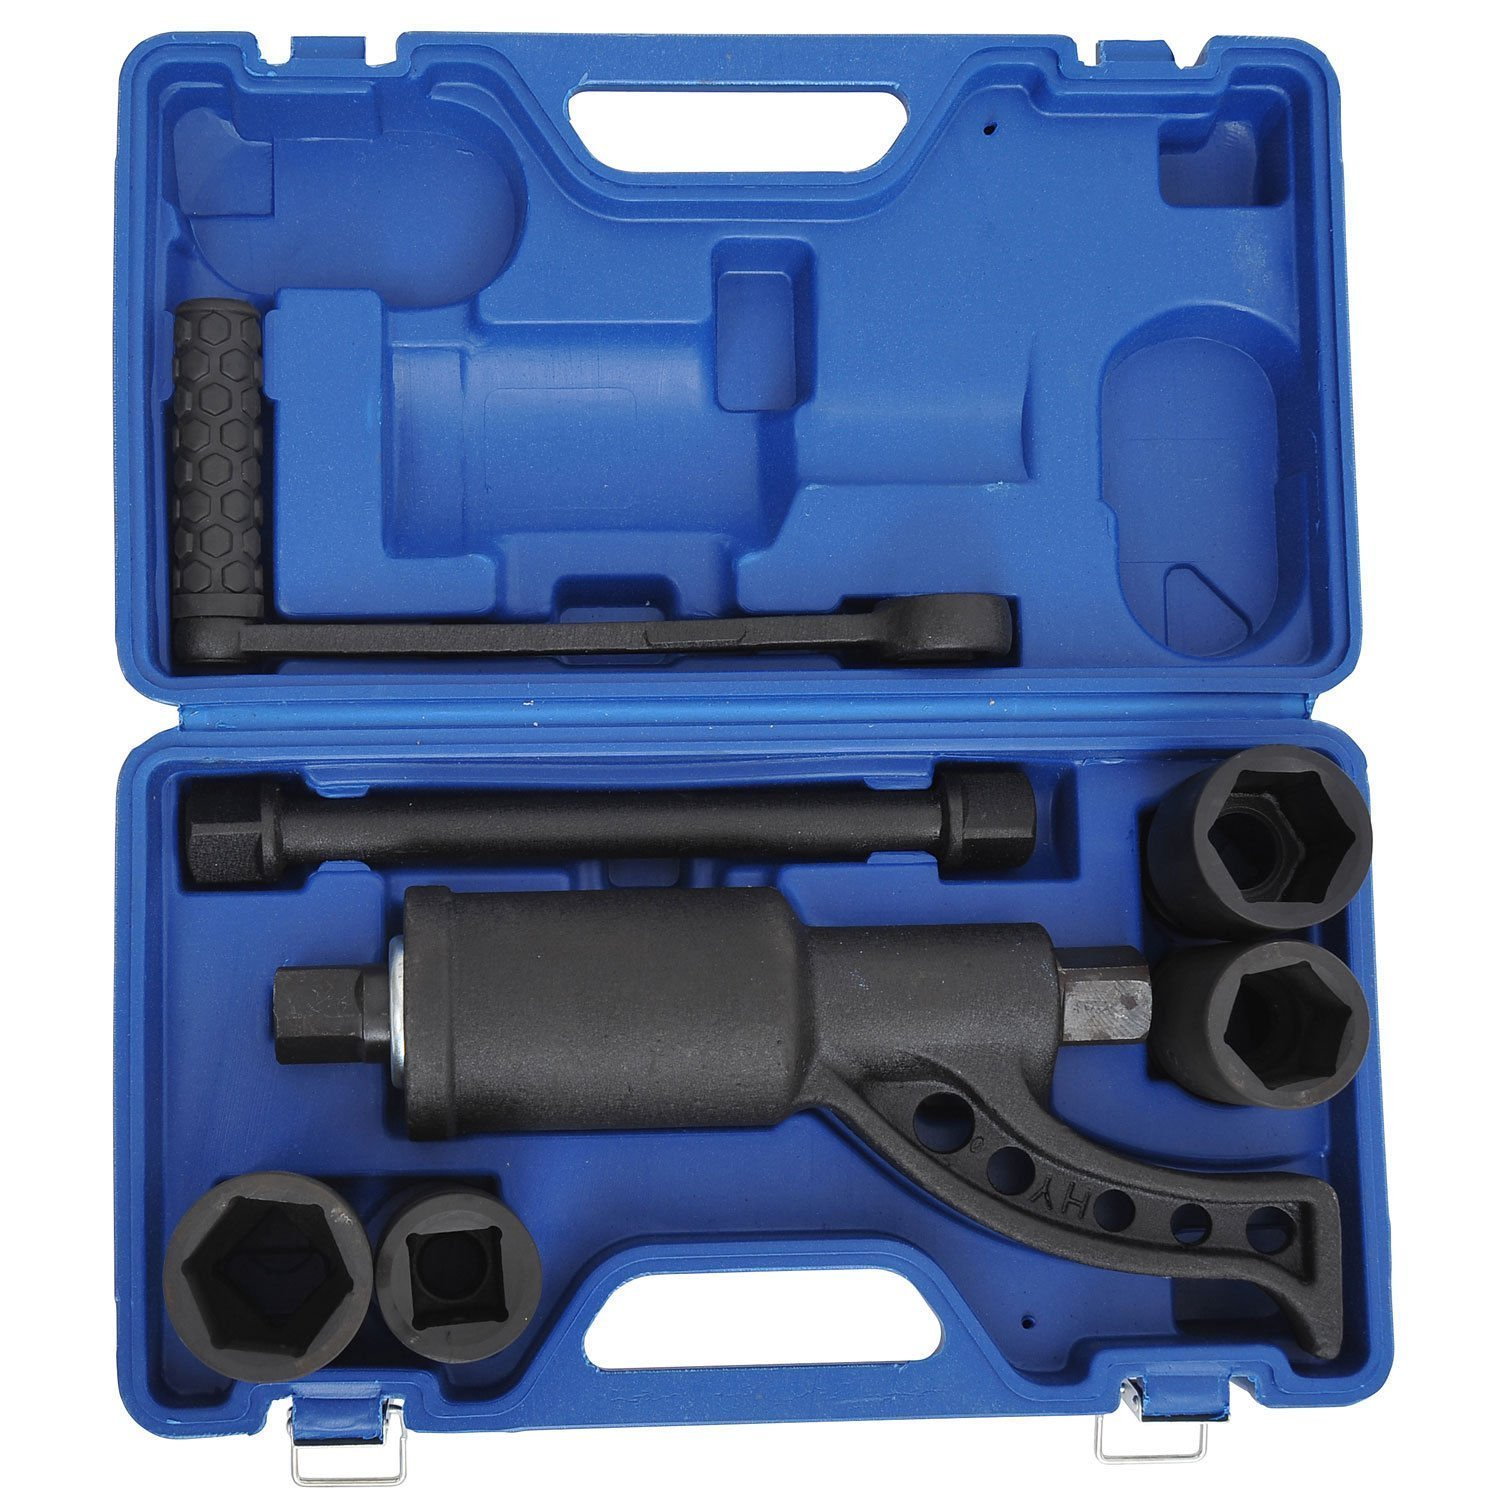 Heavy Duty Torque Multiplier Set Wrench Lug Nut Labor Saving Lugnut Remover Case Alloy steel